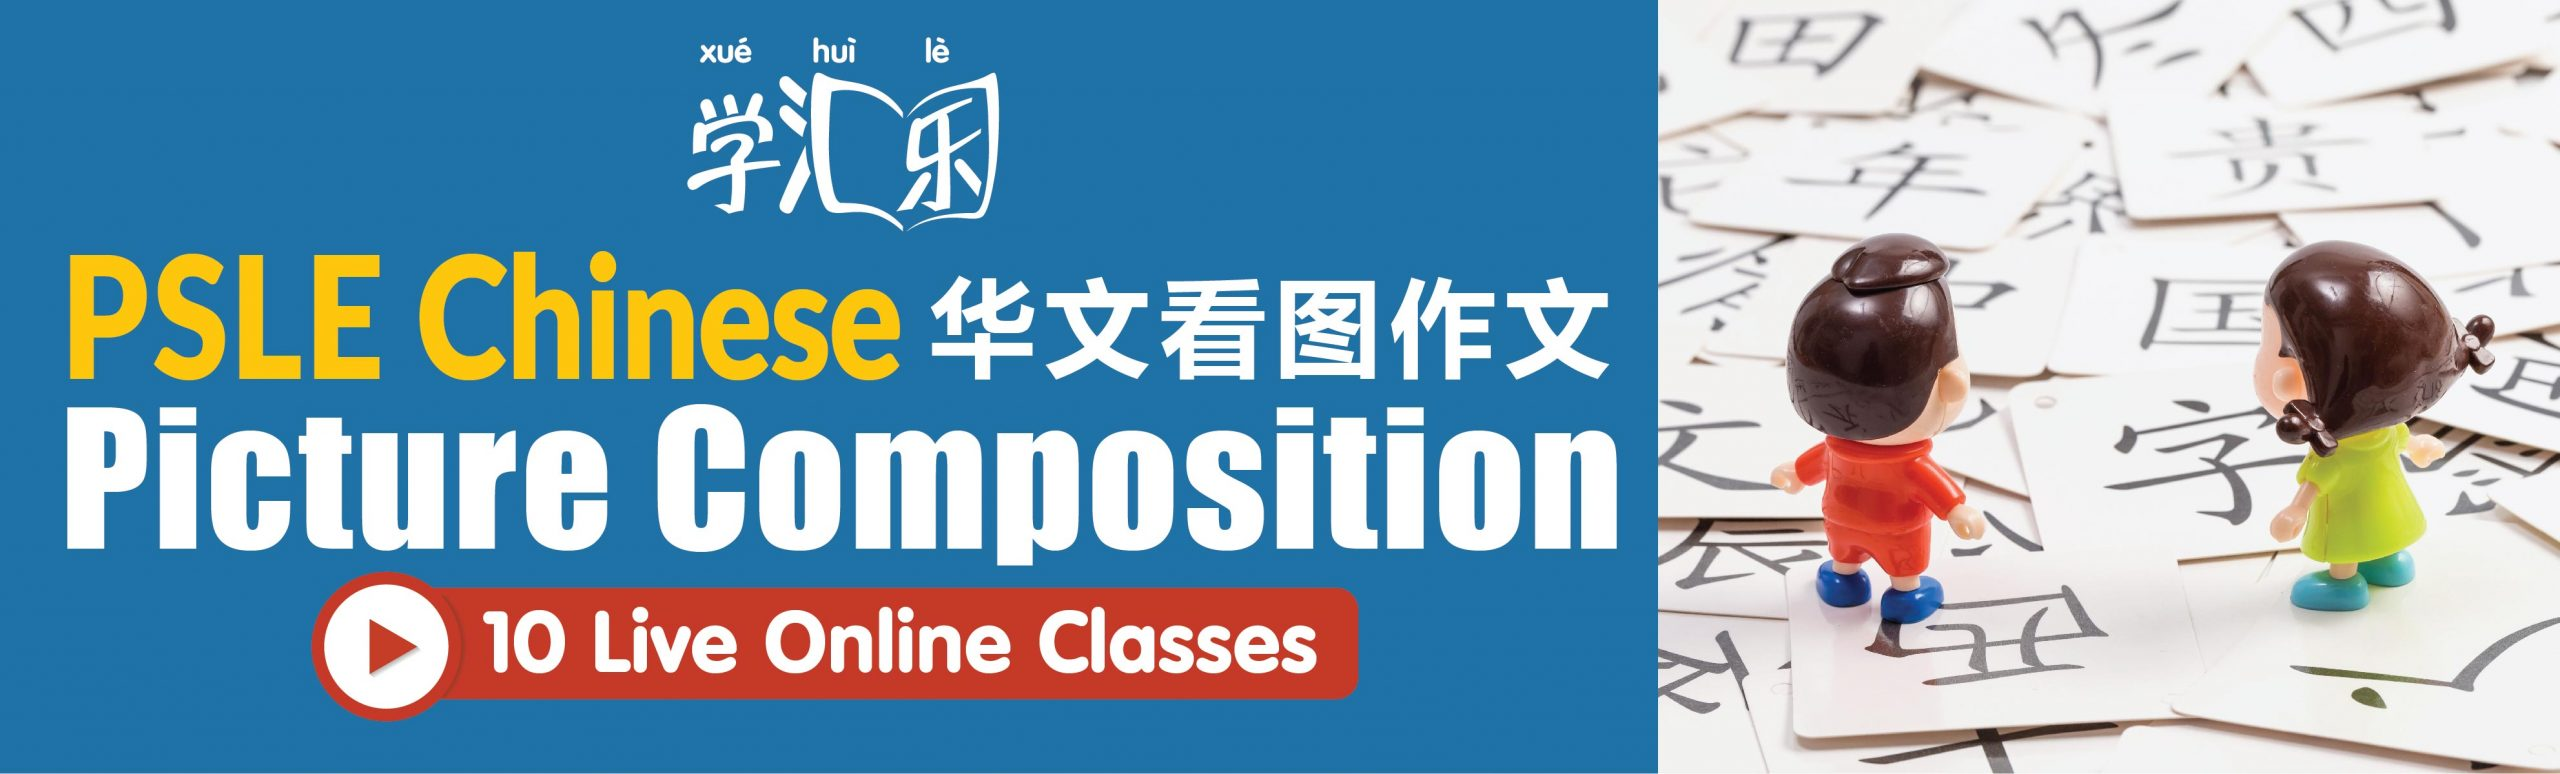 PSLE Chinese Picture Composition